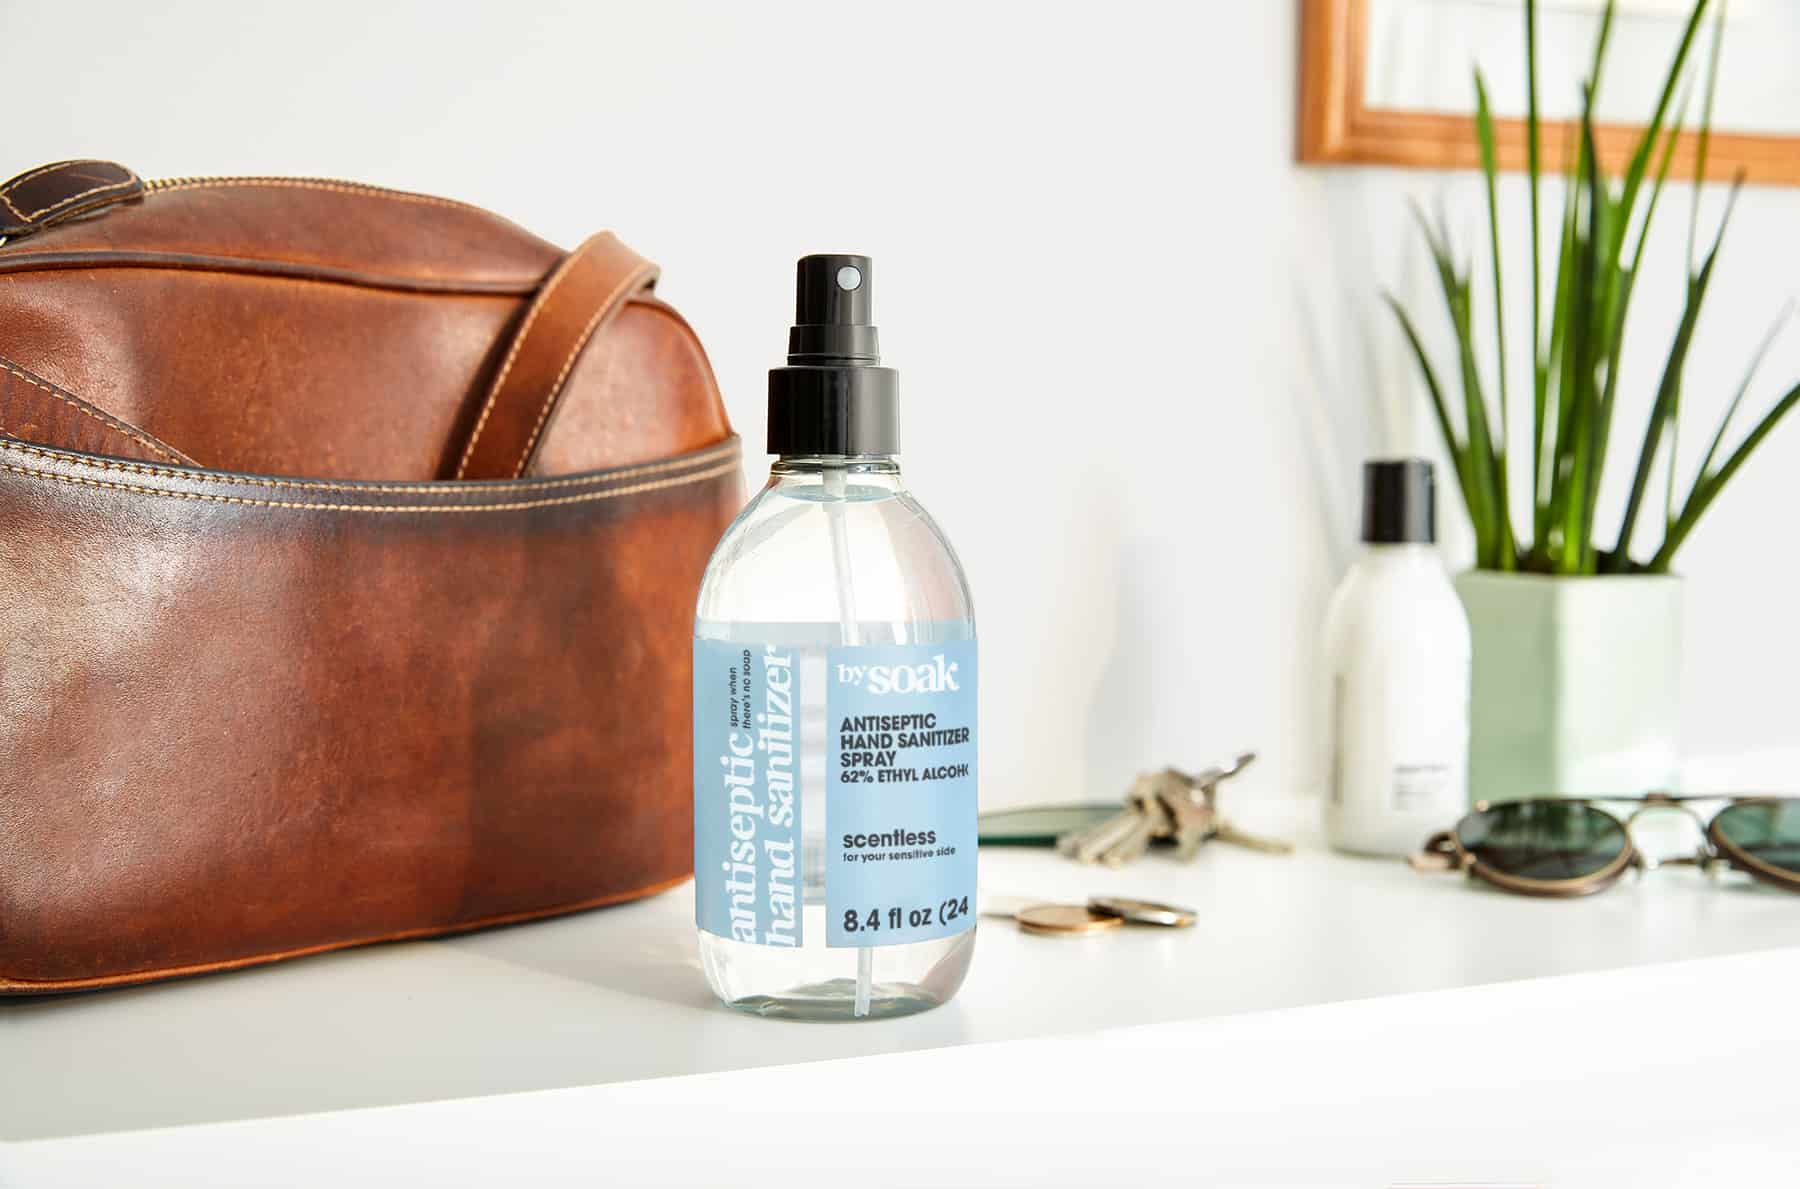 A spray bottle with a blue label next to a brown leather bag.